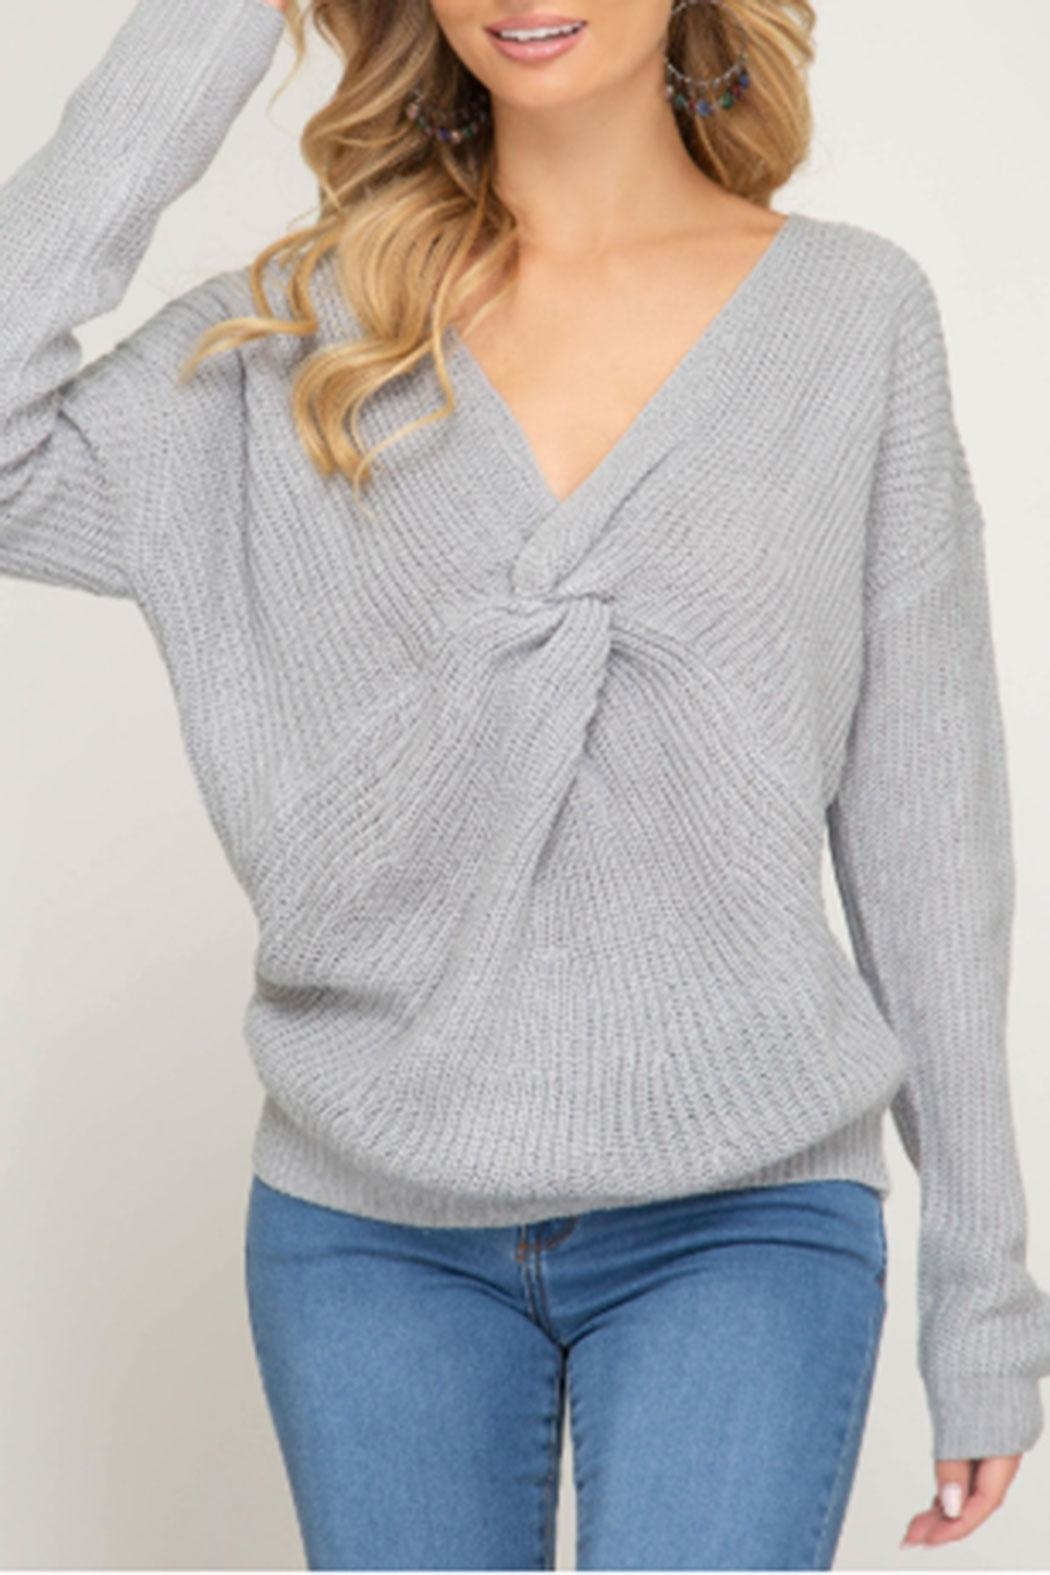 She + Sky Front Twist Sweater - Main Image